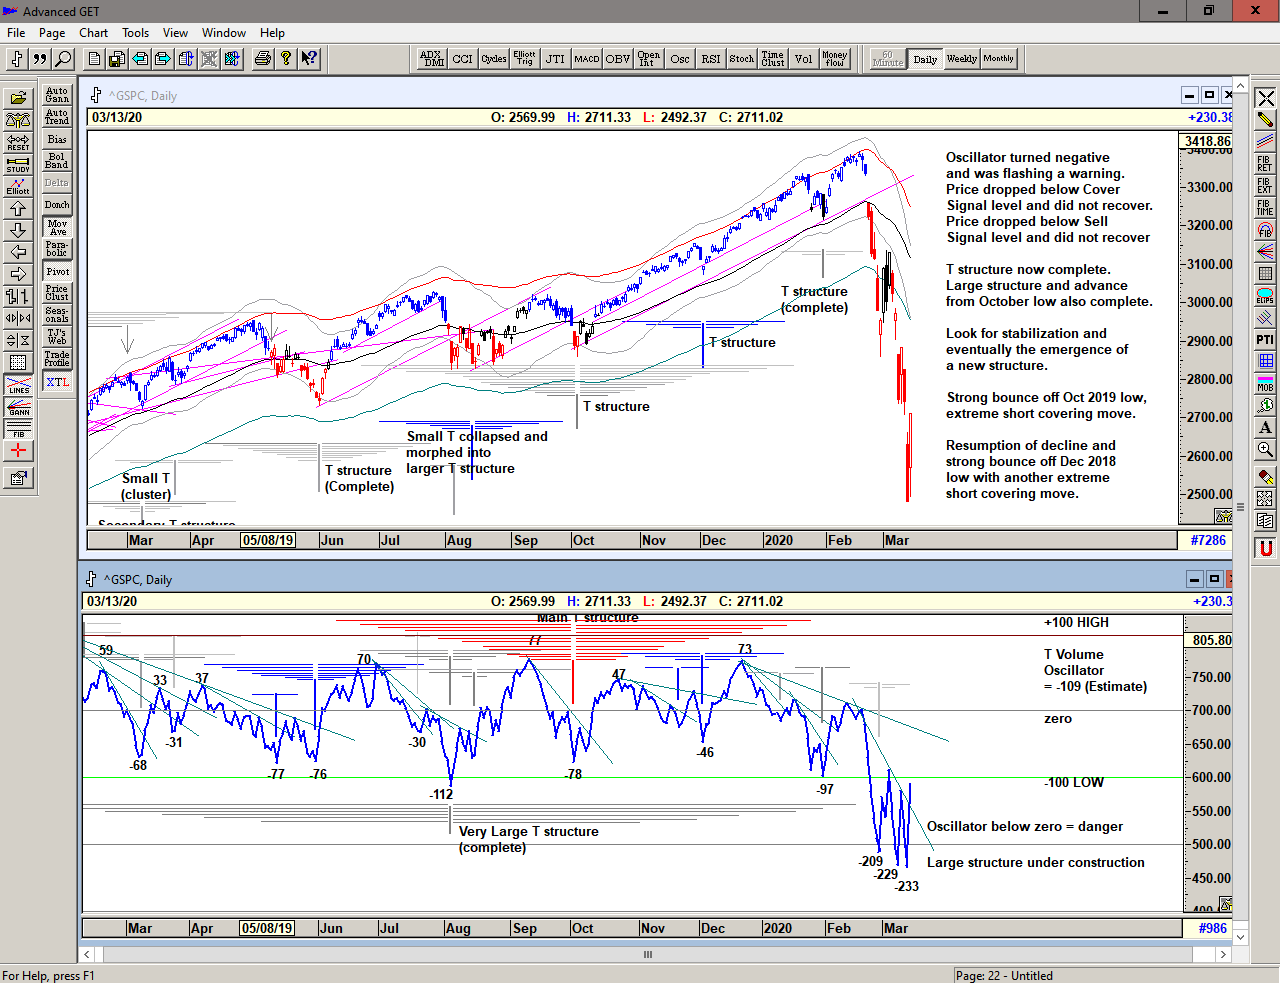 Chart of S&P 500 for 16 March 2020